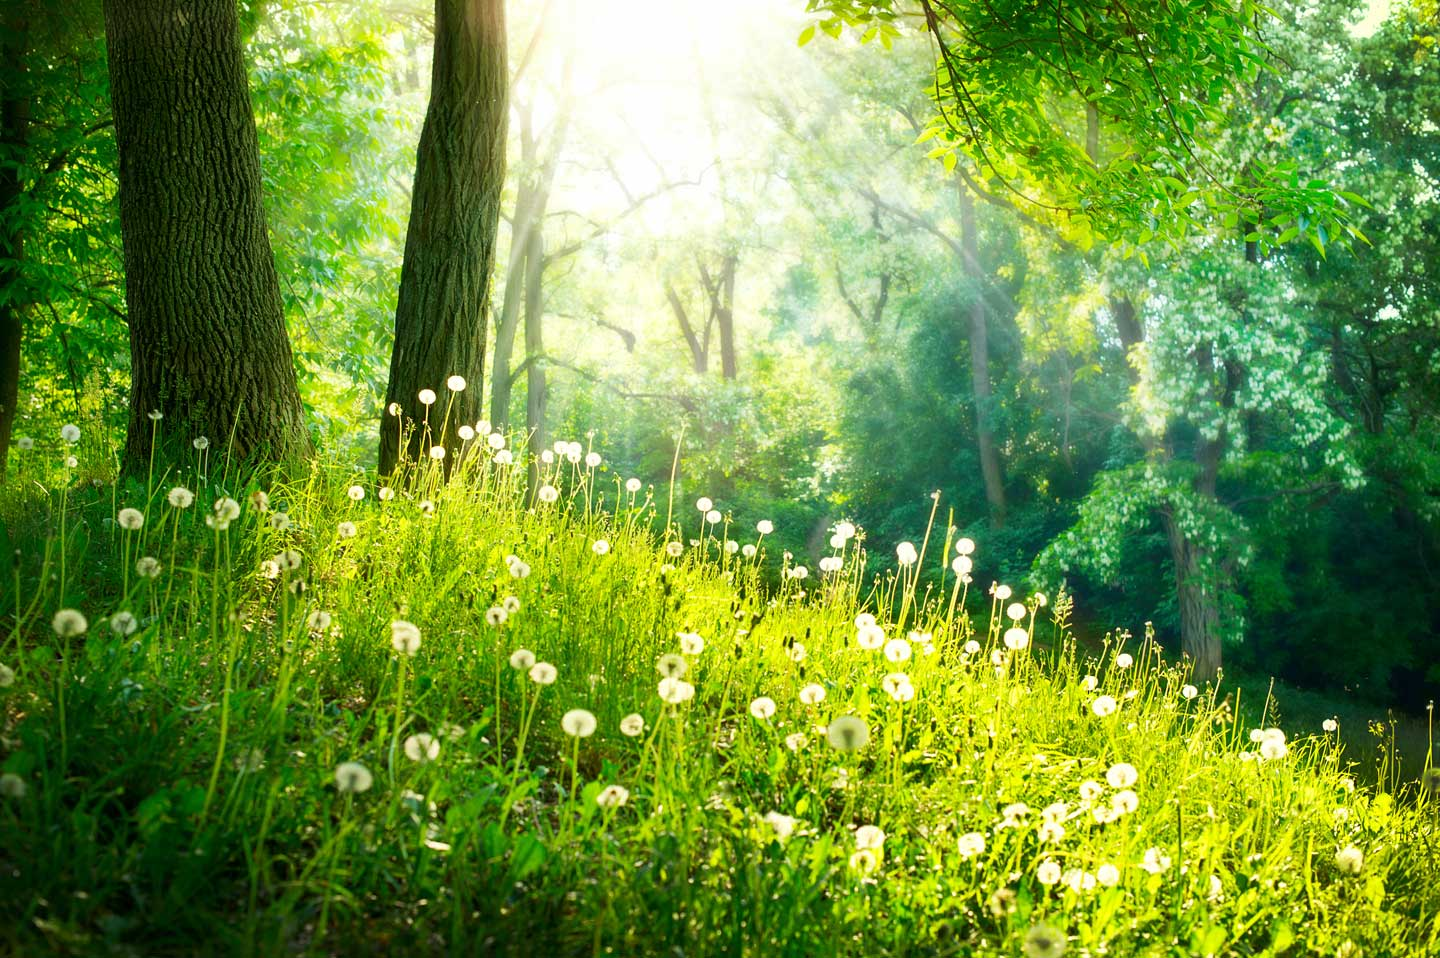 Beautiful green forest with sun filtering through the trees